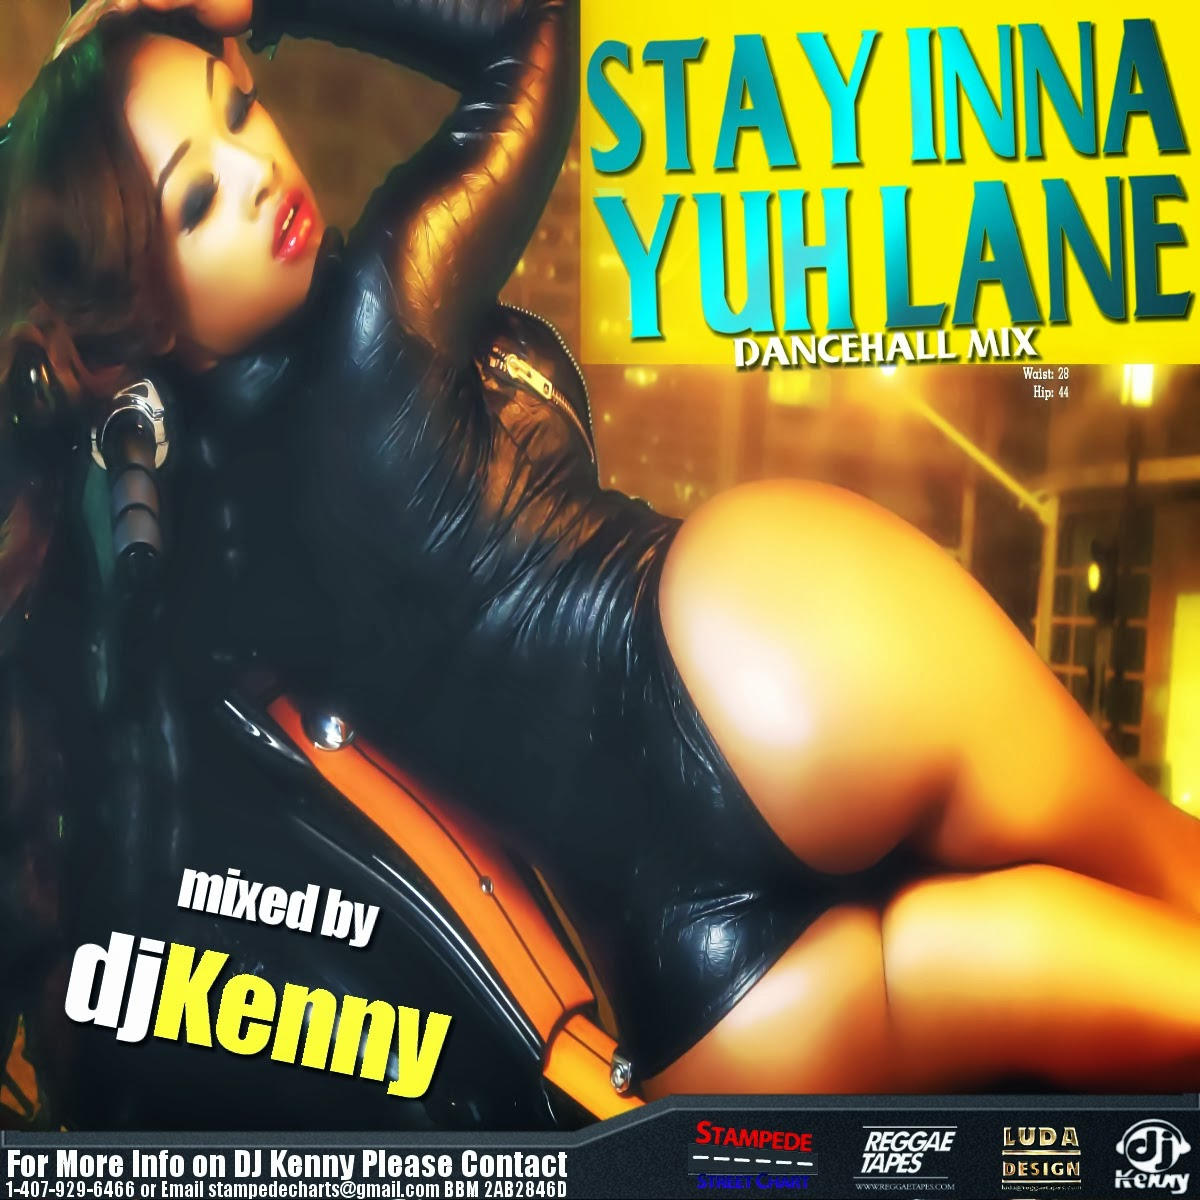 Dj kenny - Stay Inna Yuh Lane